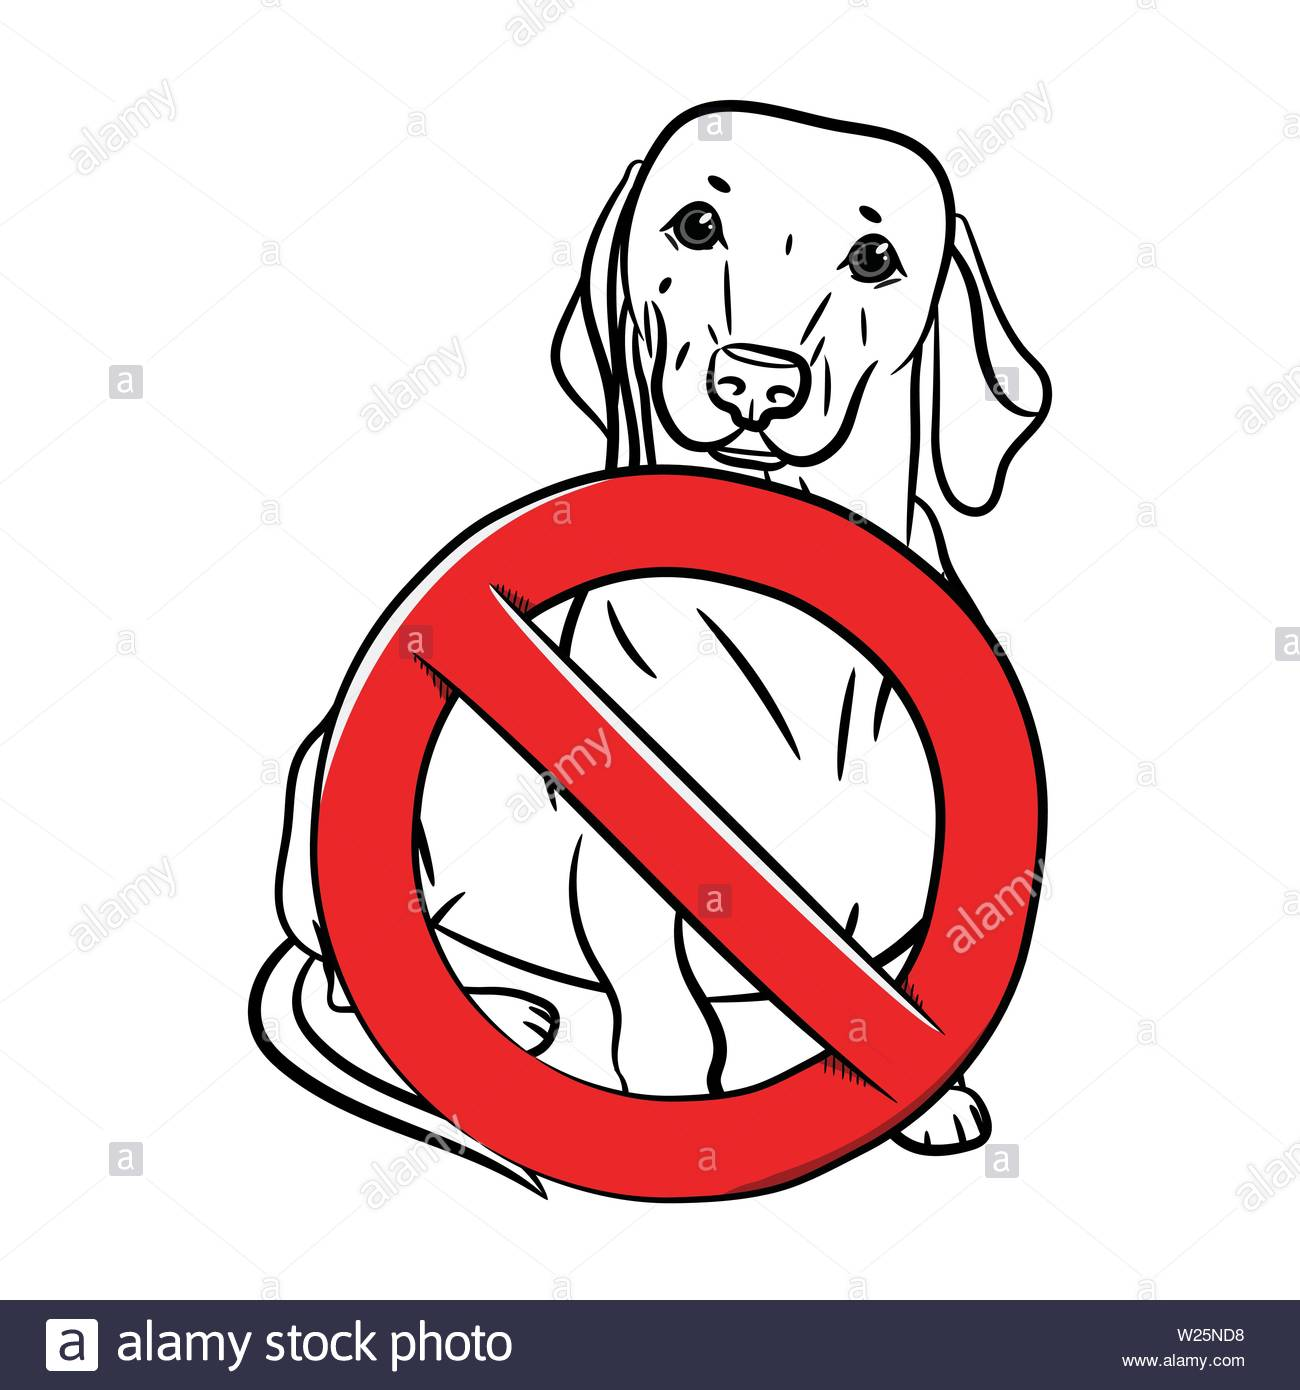 A dachshund dog is sitting standing and a sign of prohibition in the outline style. Stop the dog. - Stock Image